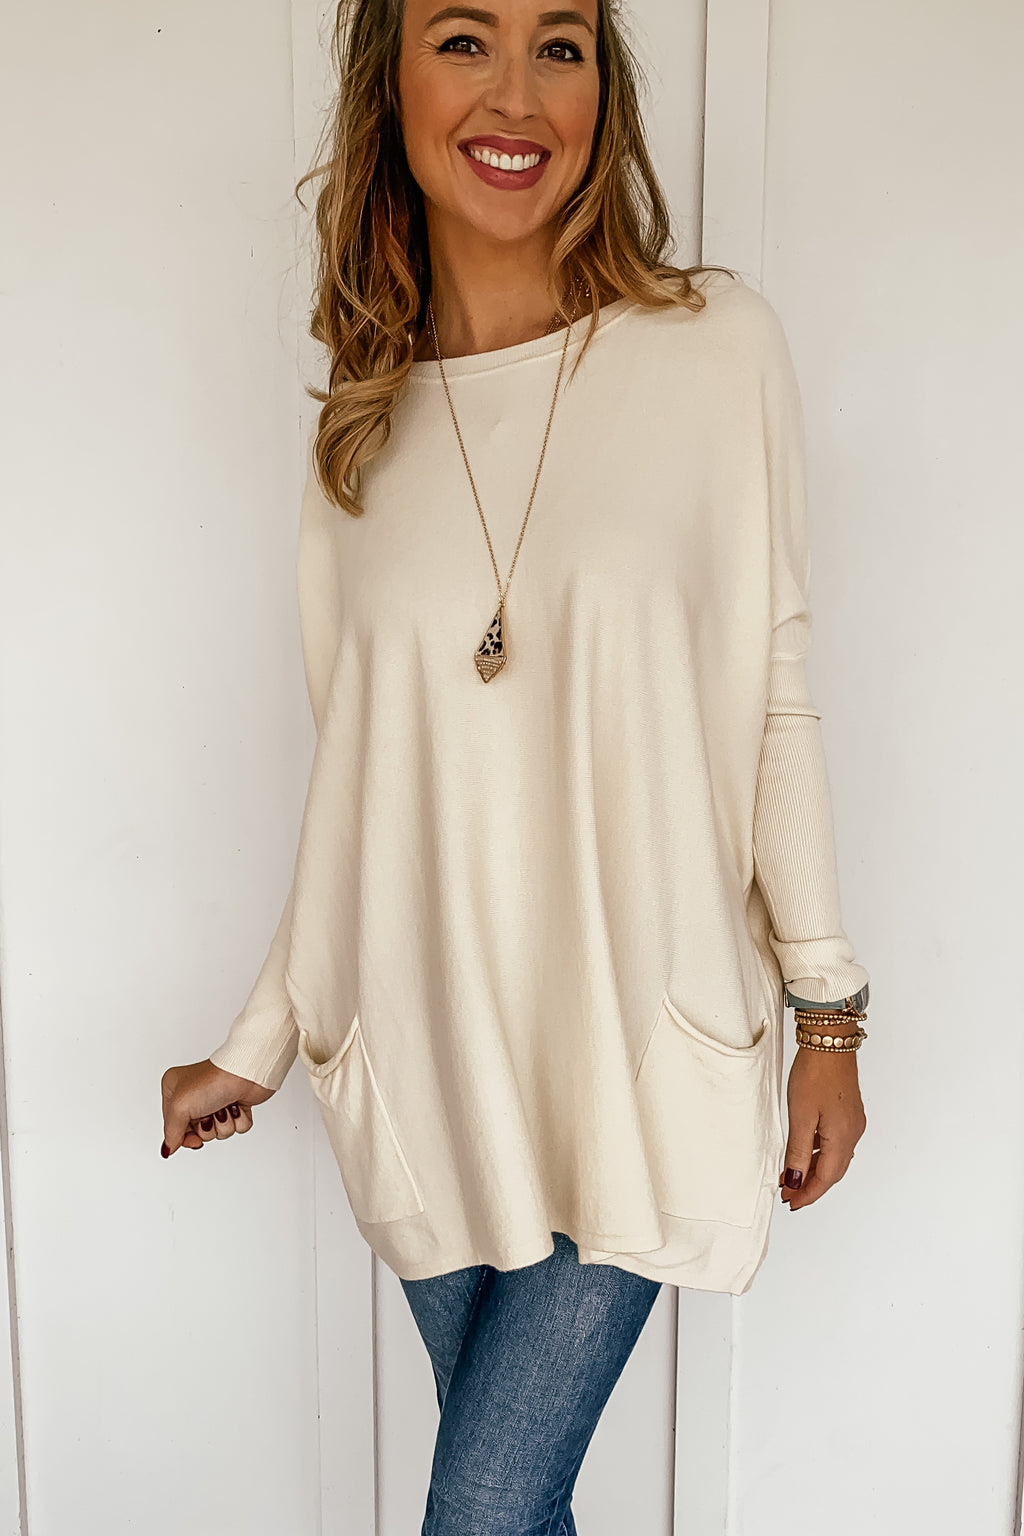 Oversized Pocketed Sweater in Cream